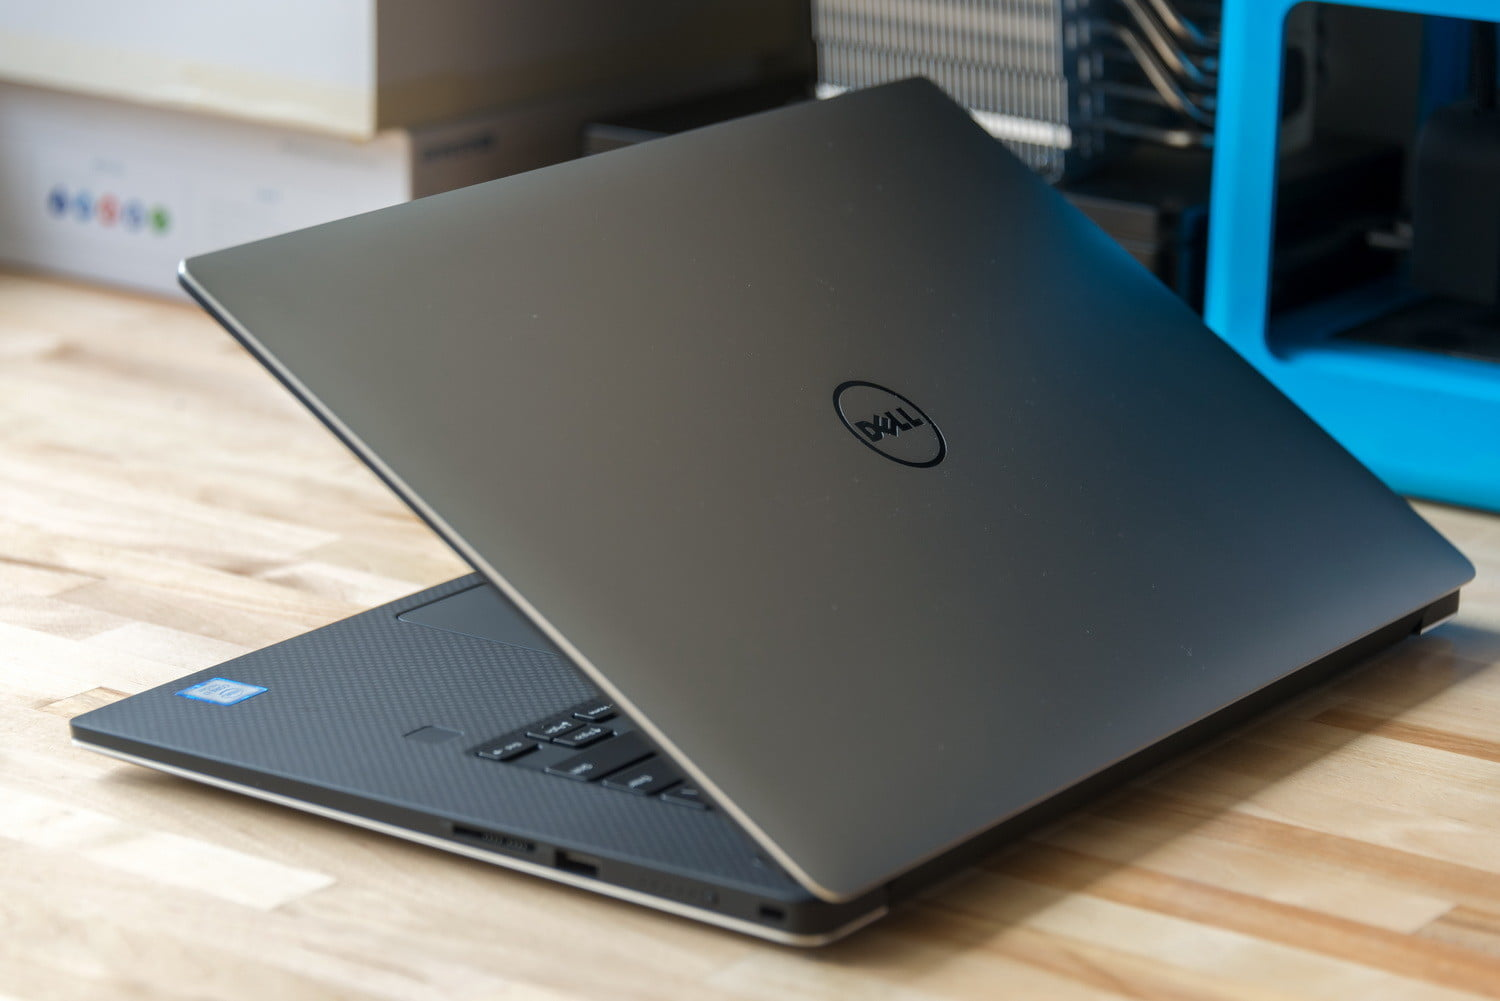 Dell XPS 15 9560 Review | Digital Trends